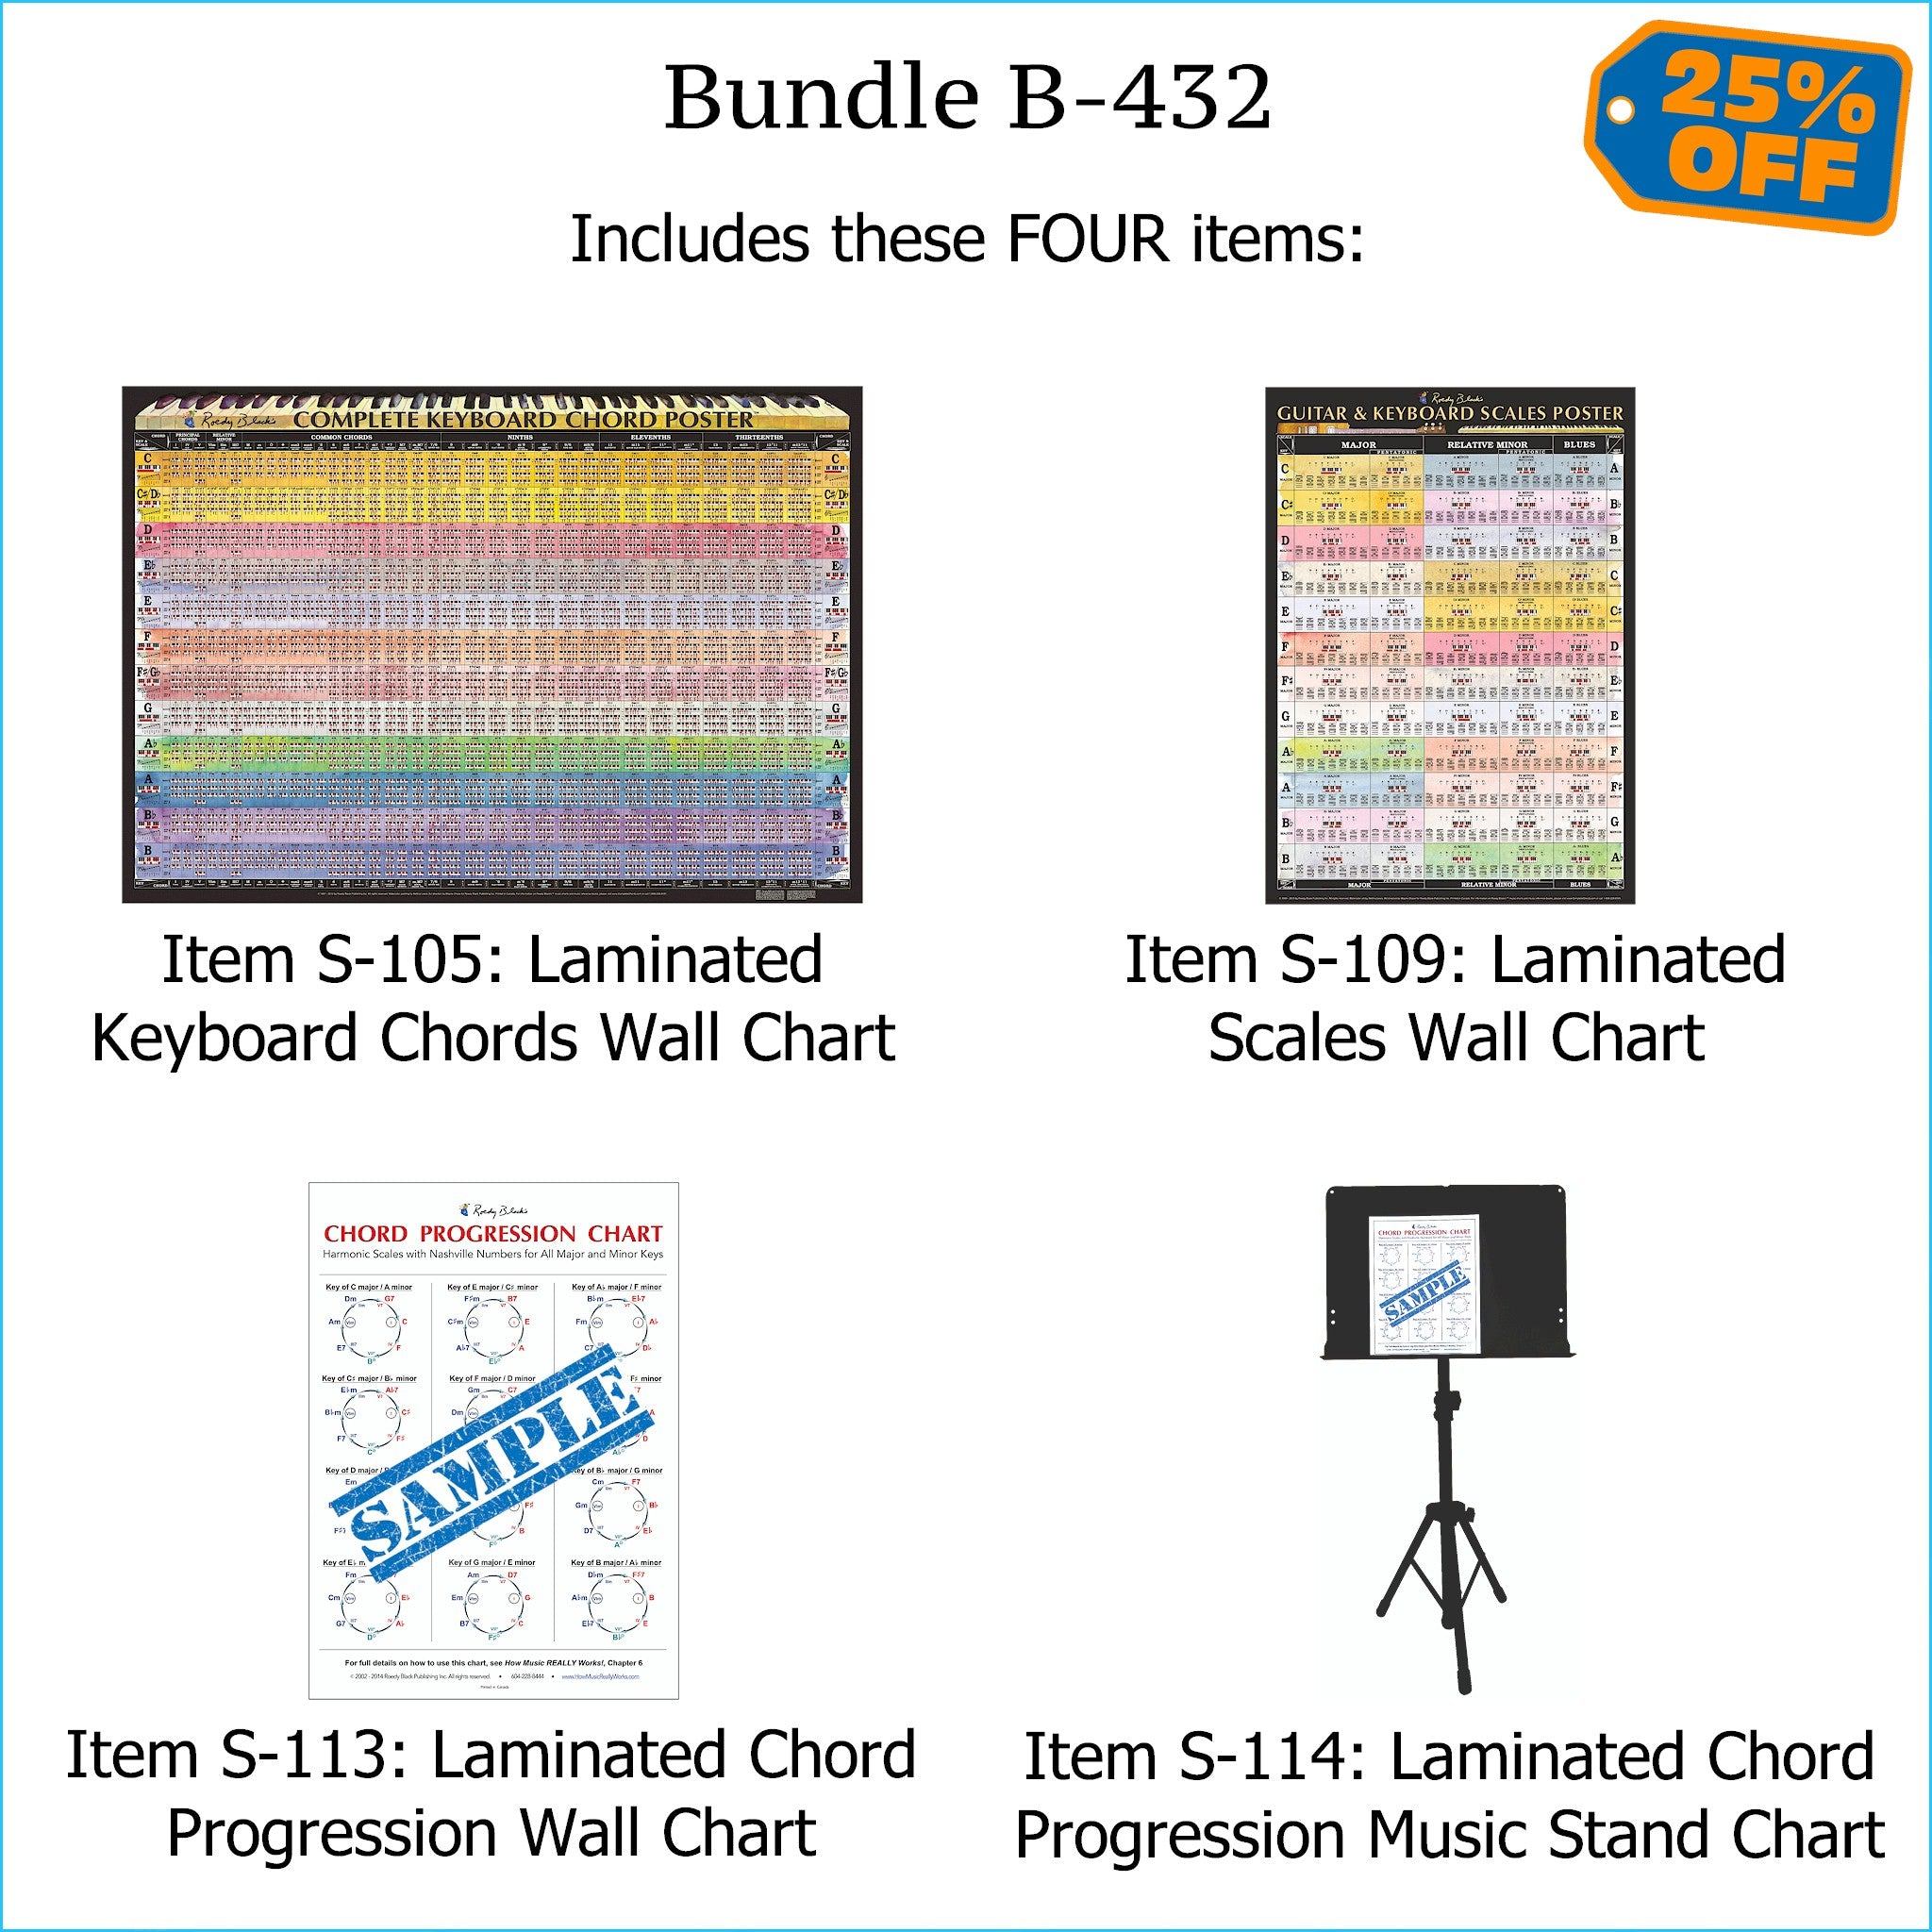 Laminated charts of piano & keyboard chords, scales, and chord progressions